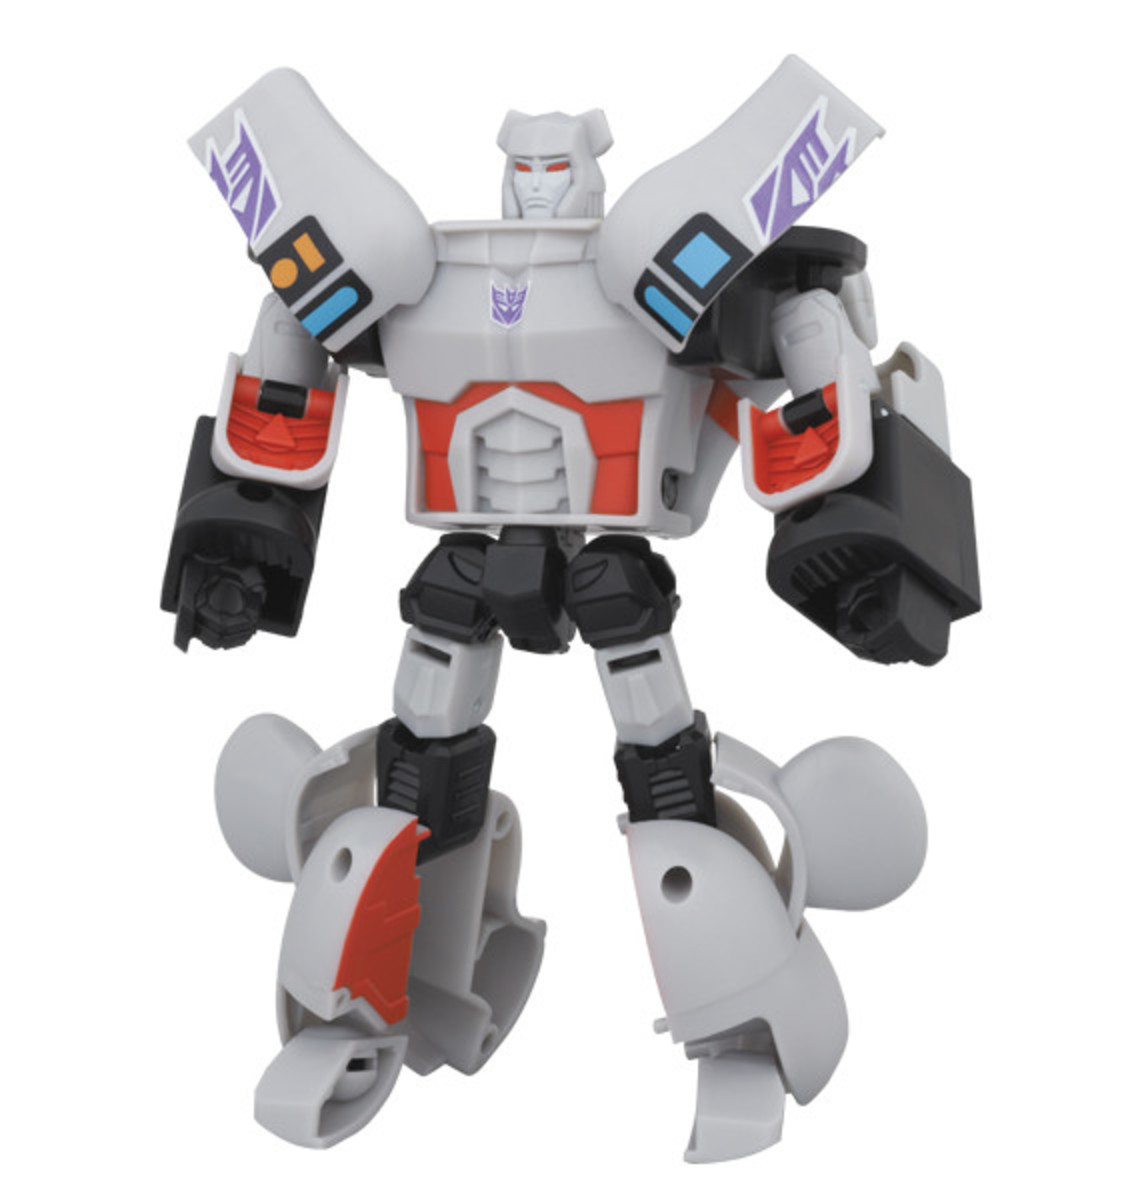 transformers-medicom-toy-transformable-bearbrick-200-percent-set-05